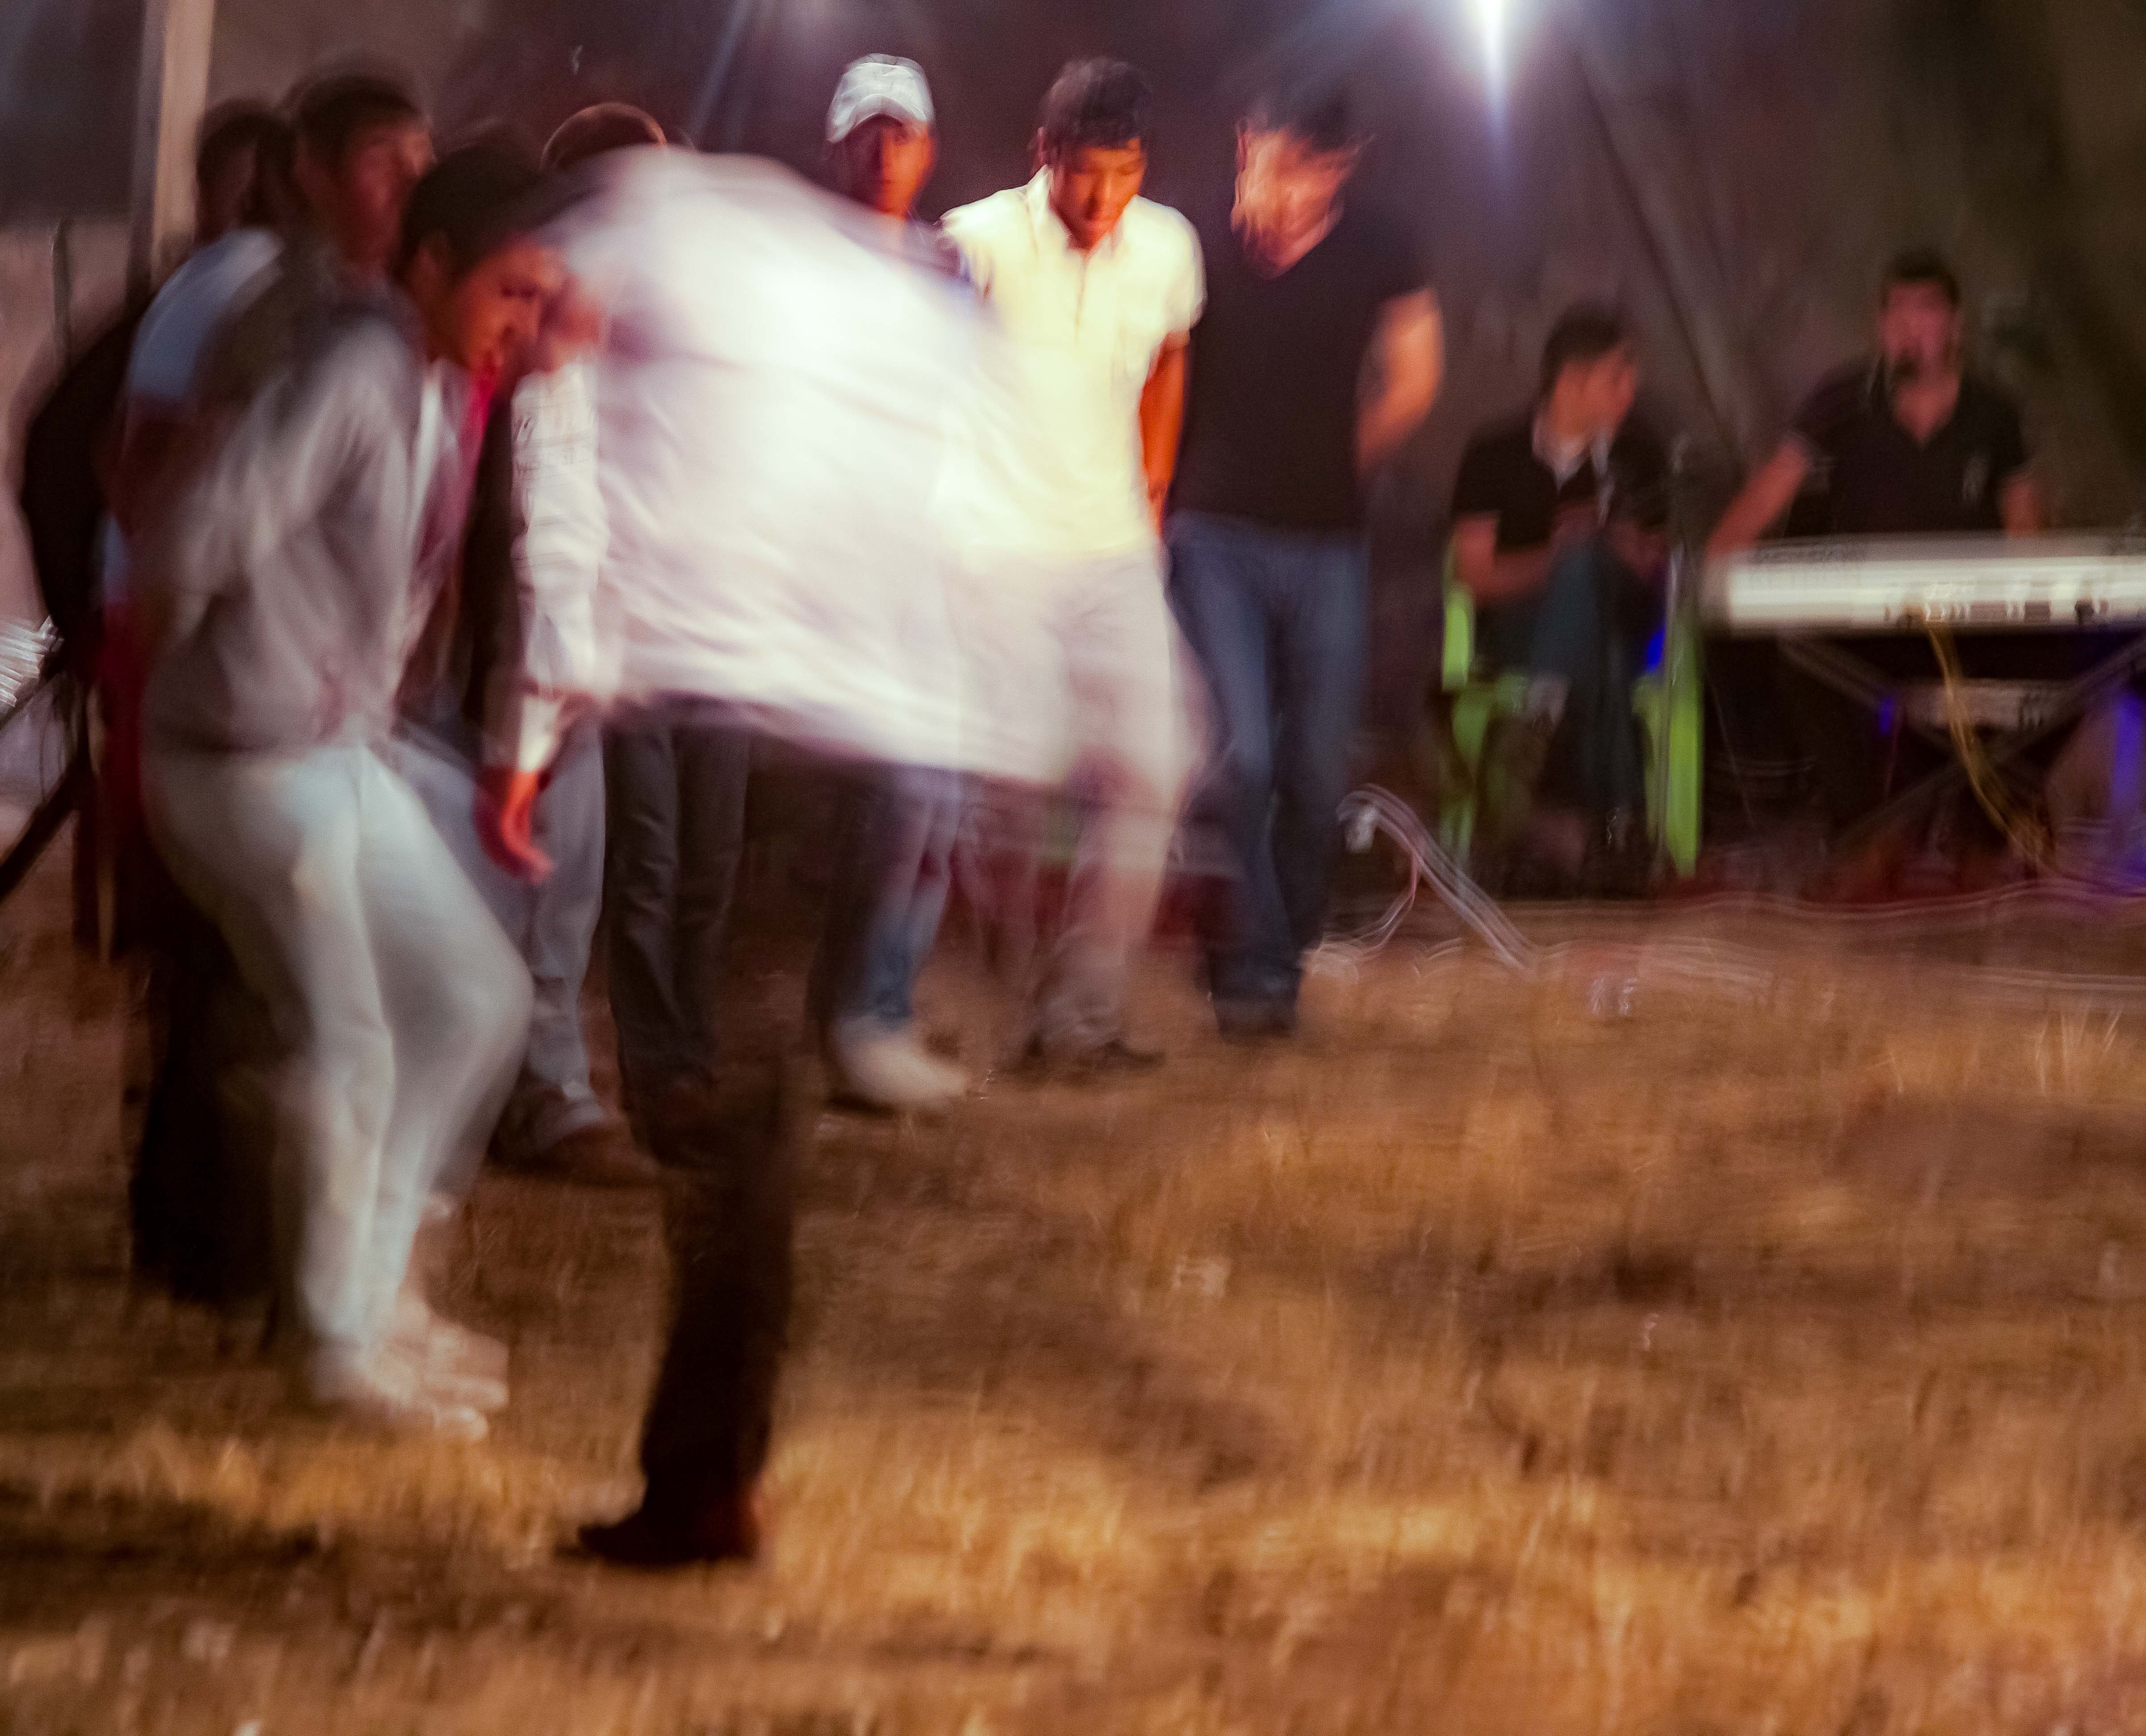 Turkey, Agri Prov, Dancing Men, 2010, IMG 8399